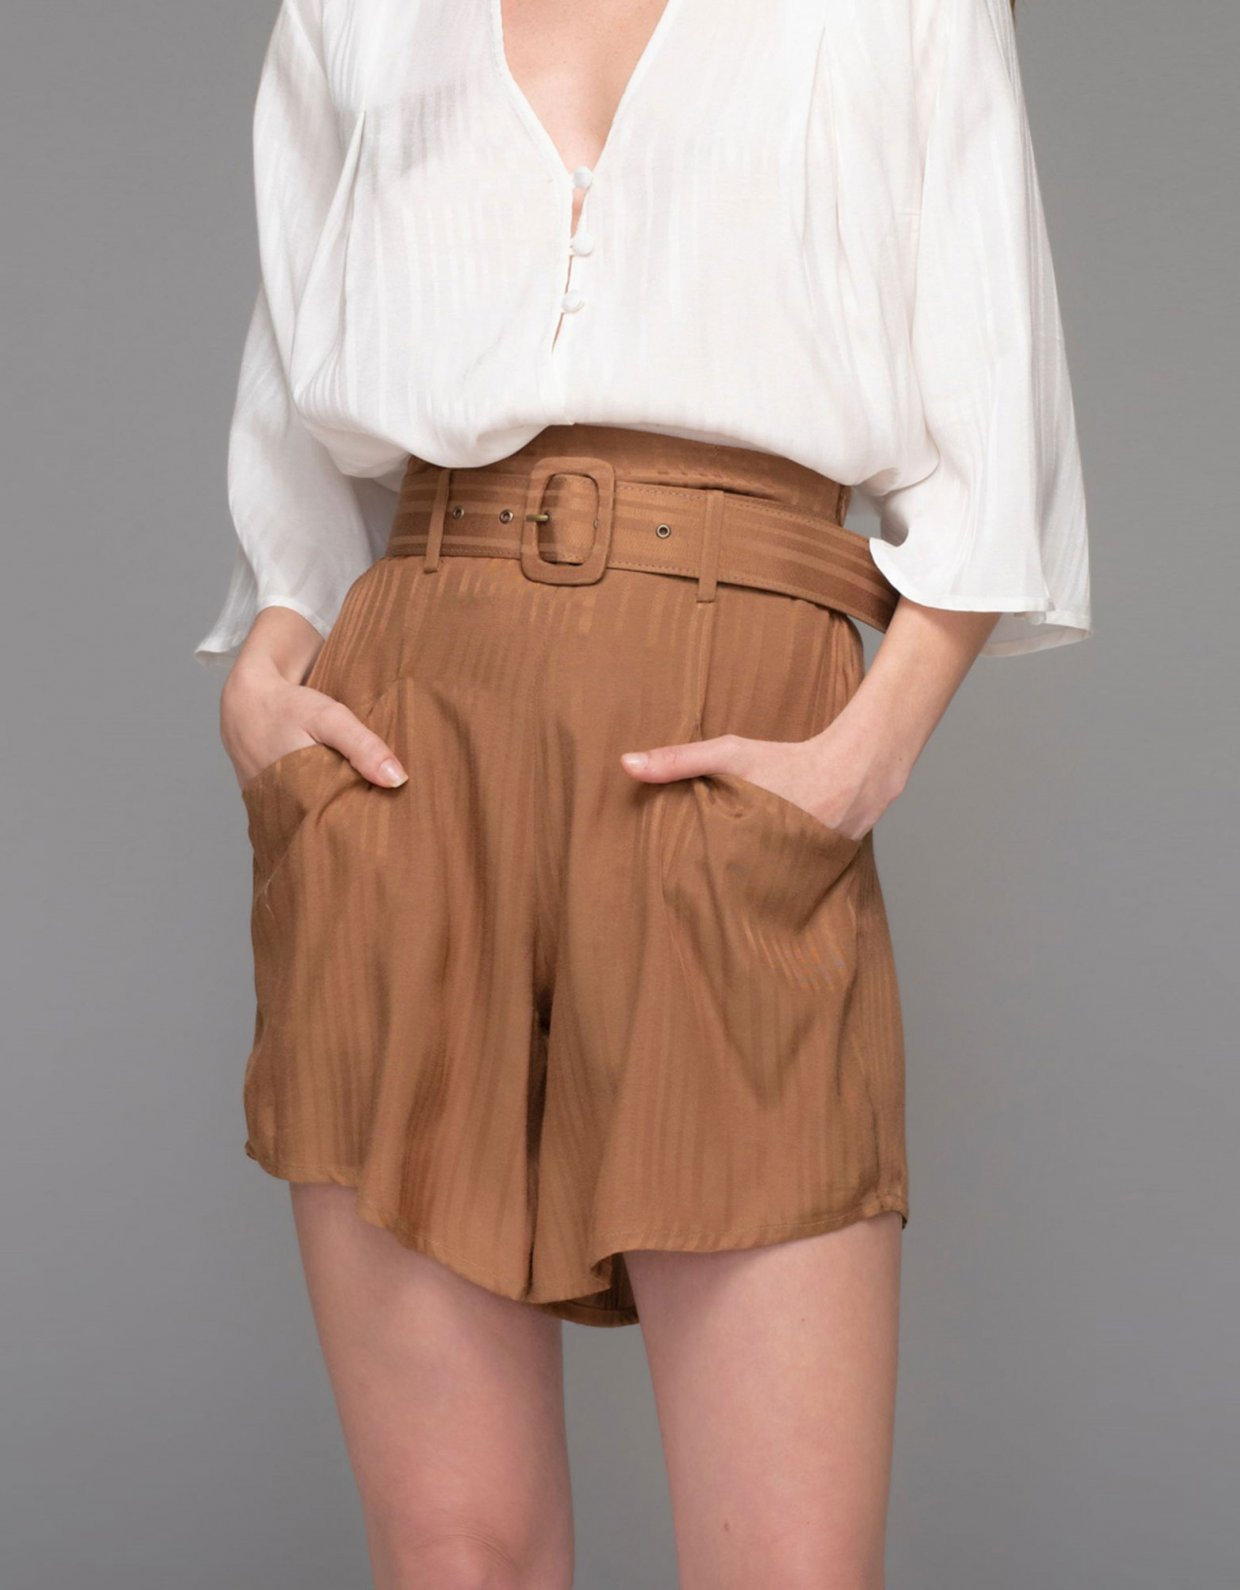 Nadia Rapti Saint Tropez shorts chocolate